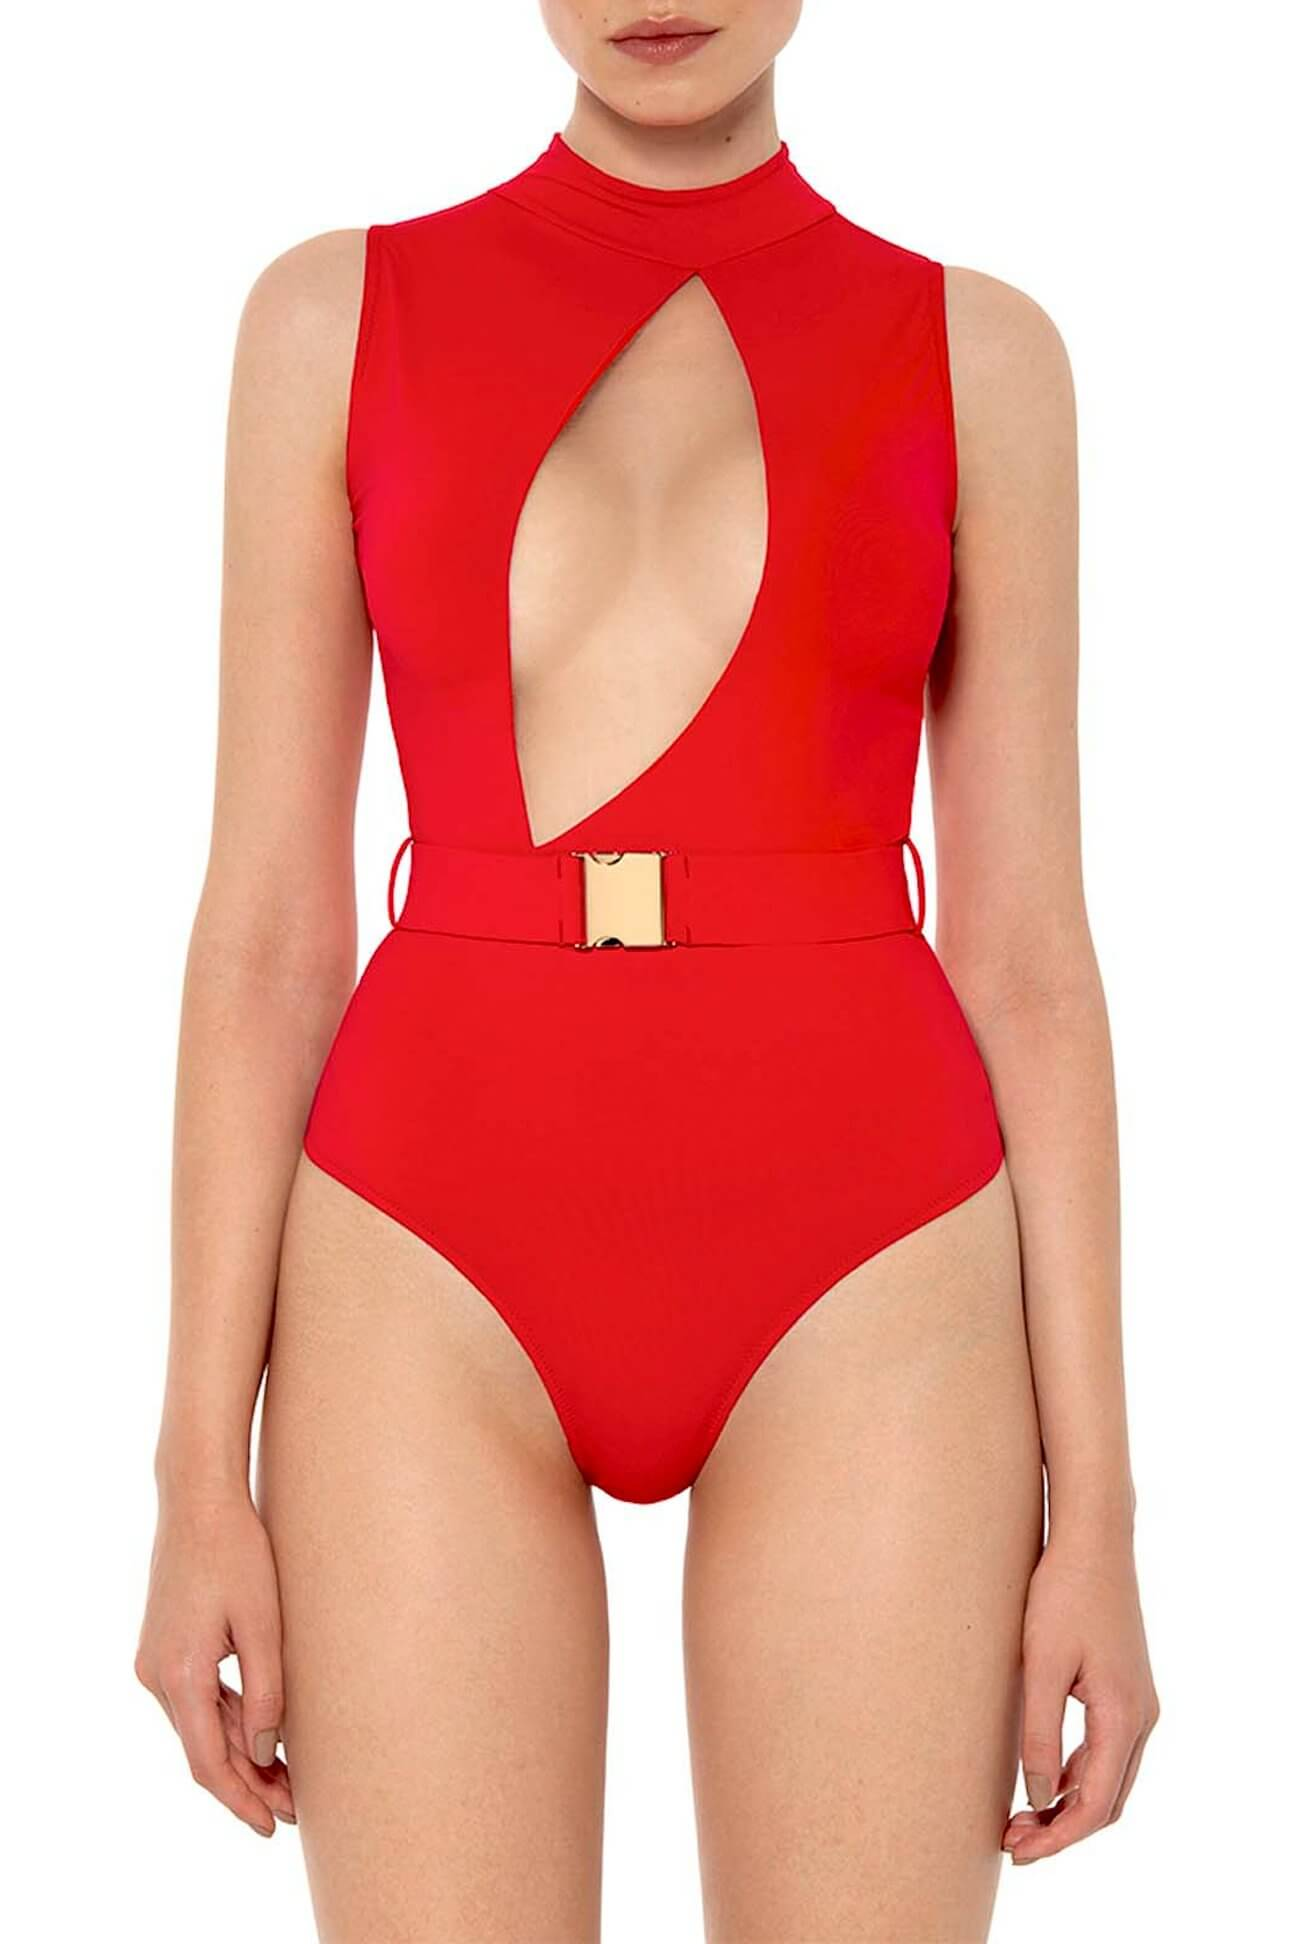 b3a8dc7908f Red Instinct One Piece - Halter Neck Swimsuits - One-Piece Swimsuits ...